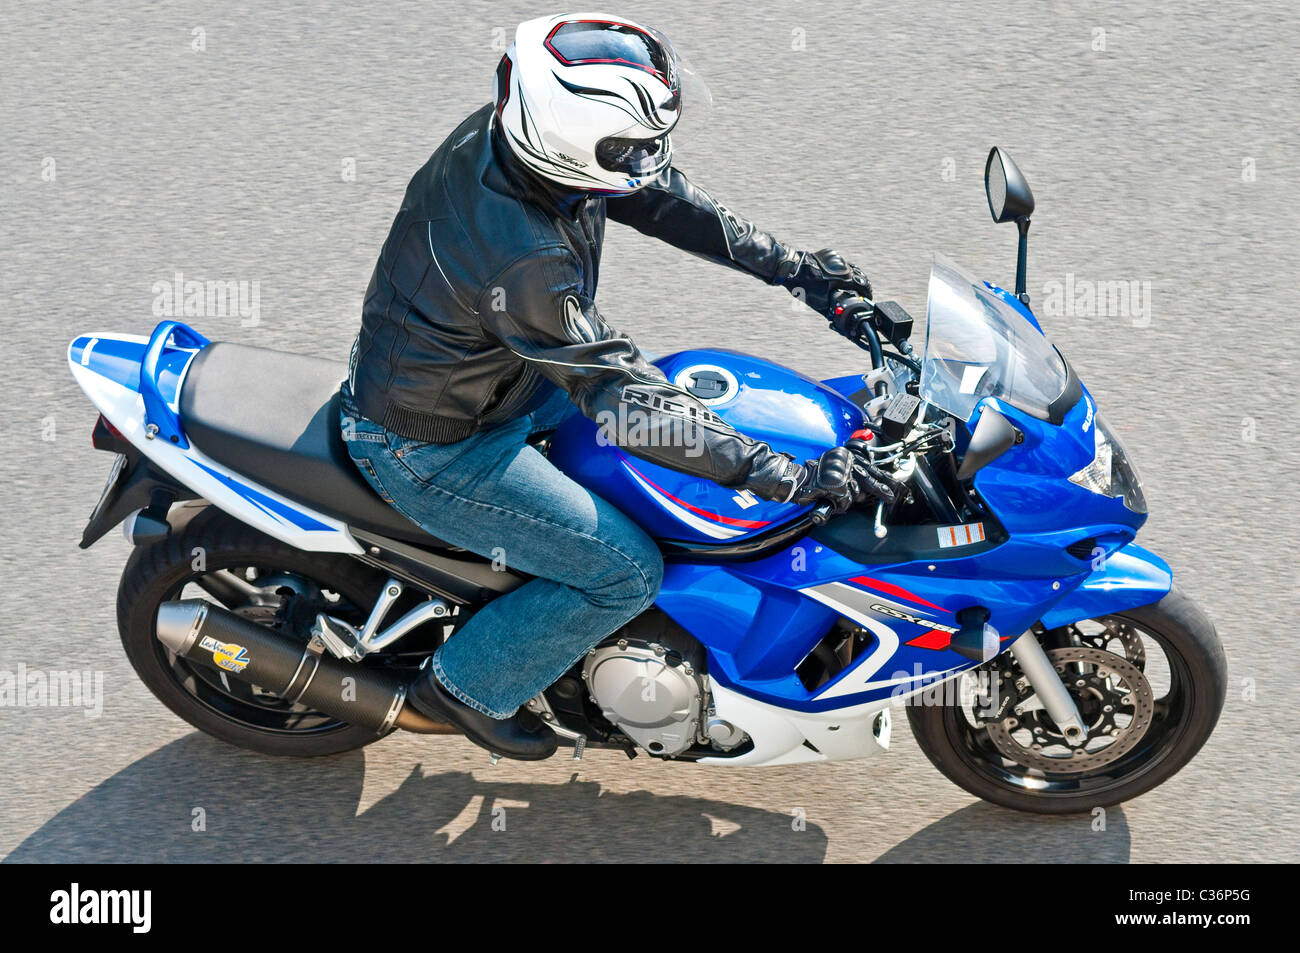 hight resolution of overhead view motorcyclist on blue suzuki gsx 650 motorbike france